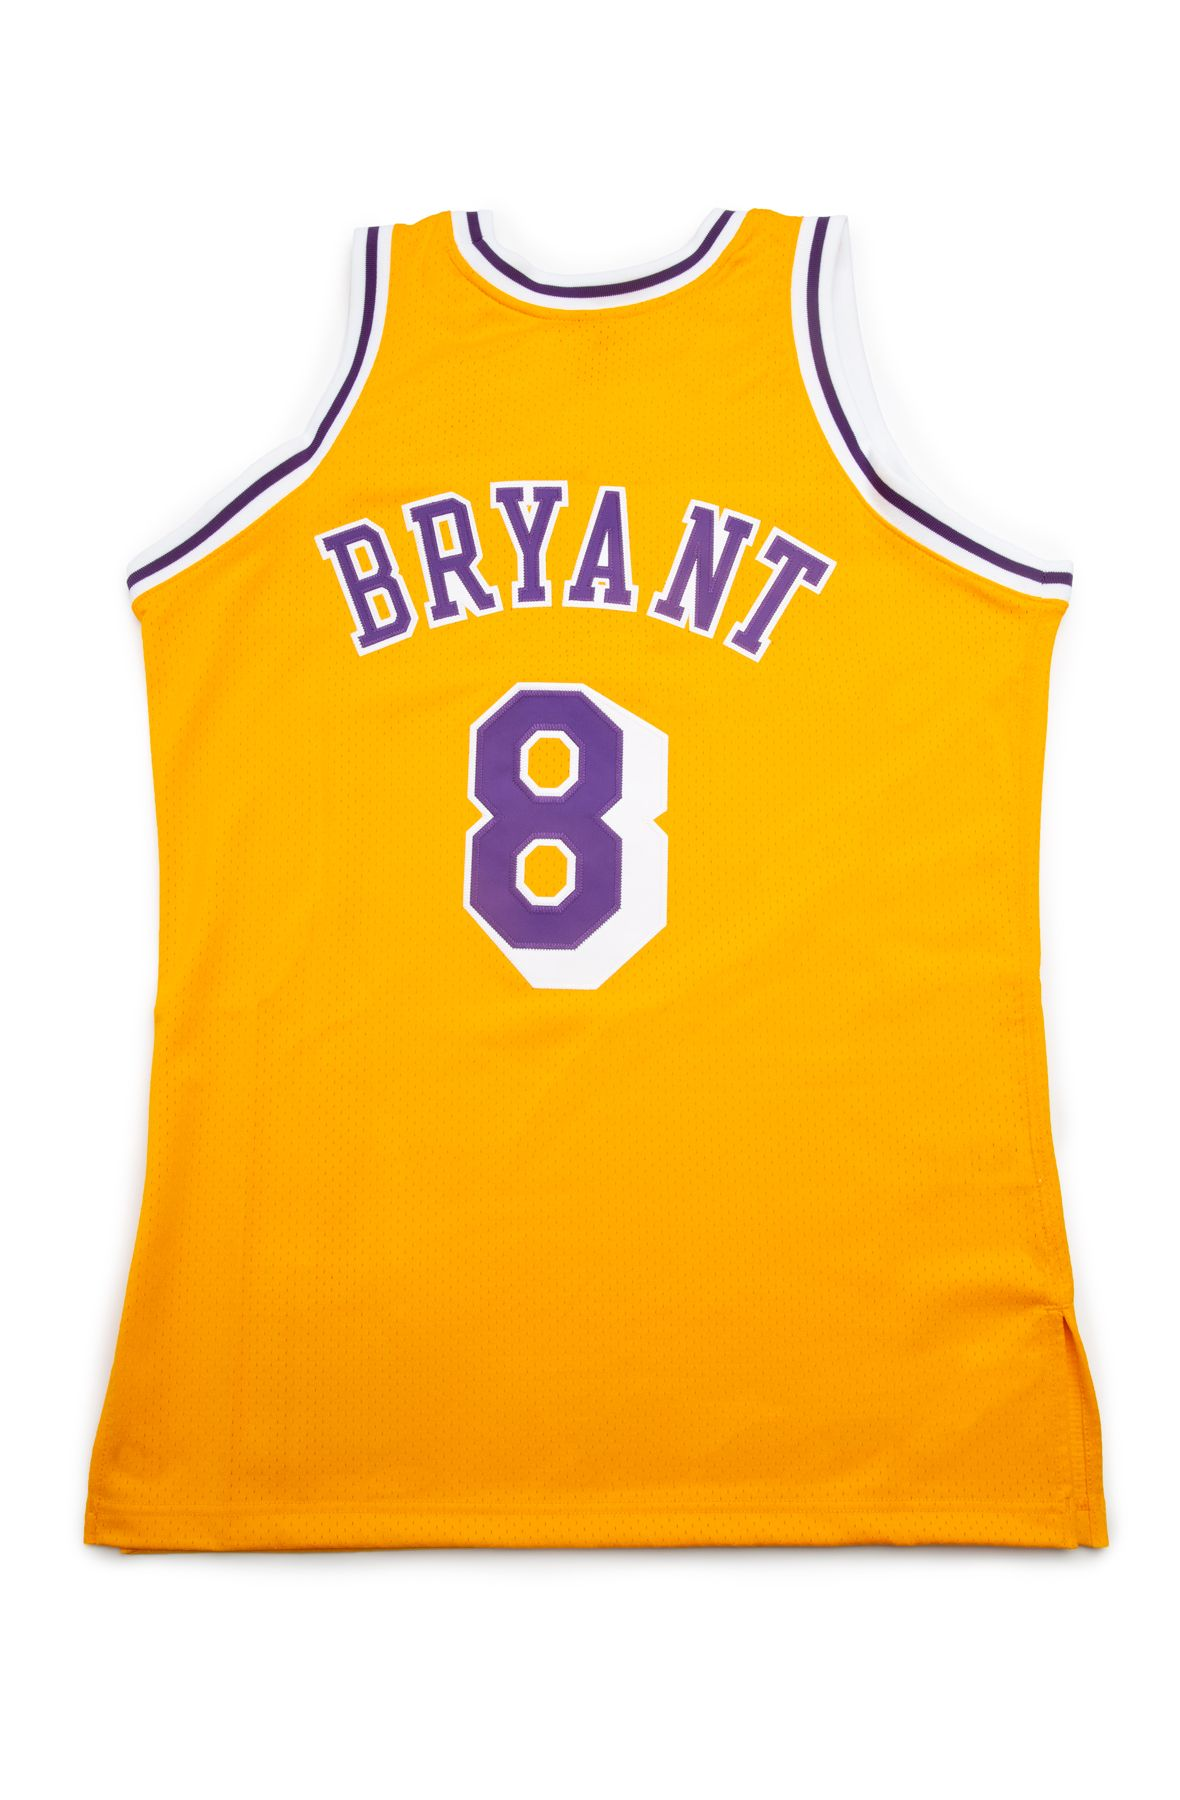 Los Angeles Lakers Kobe Bryant 1996 97 Authentic Home Jersey Light Gold